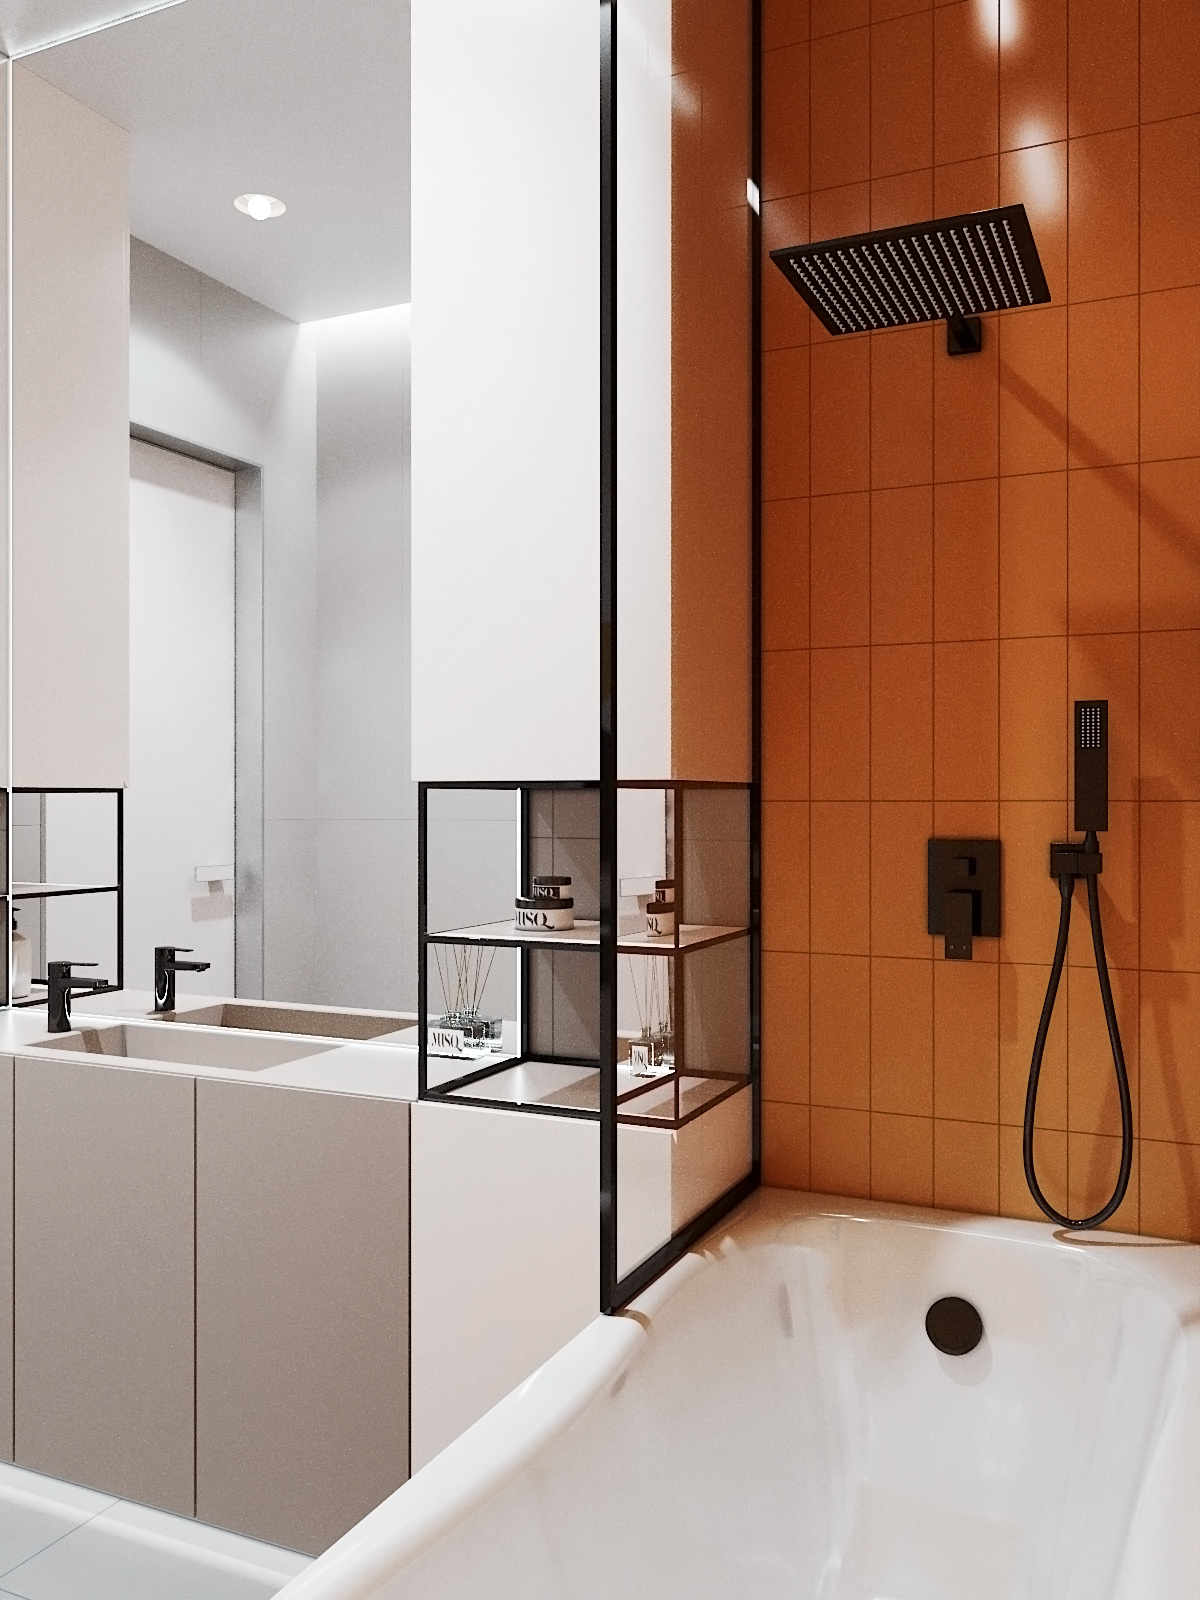 https://avantum-remont.ru/wp-content/uploads/2019/12/Bathroom_Interactive-LightMix_View06.jpg